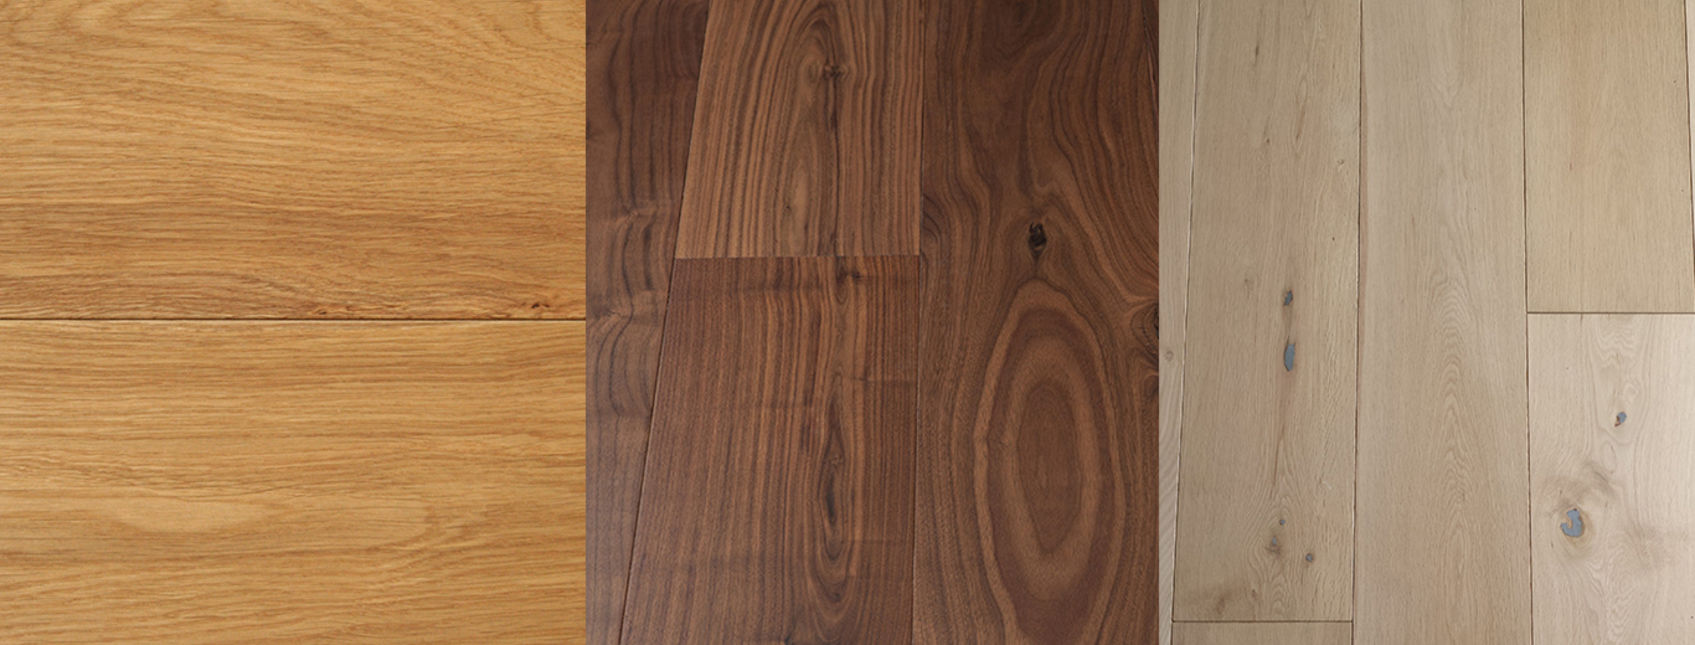 3 different versions of wood flooring